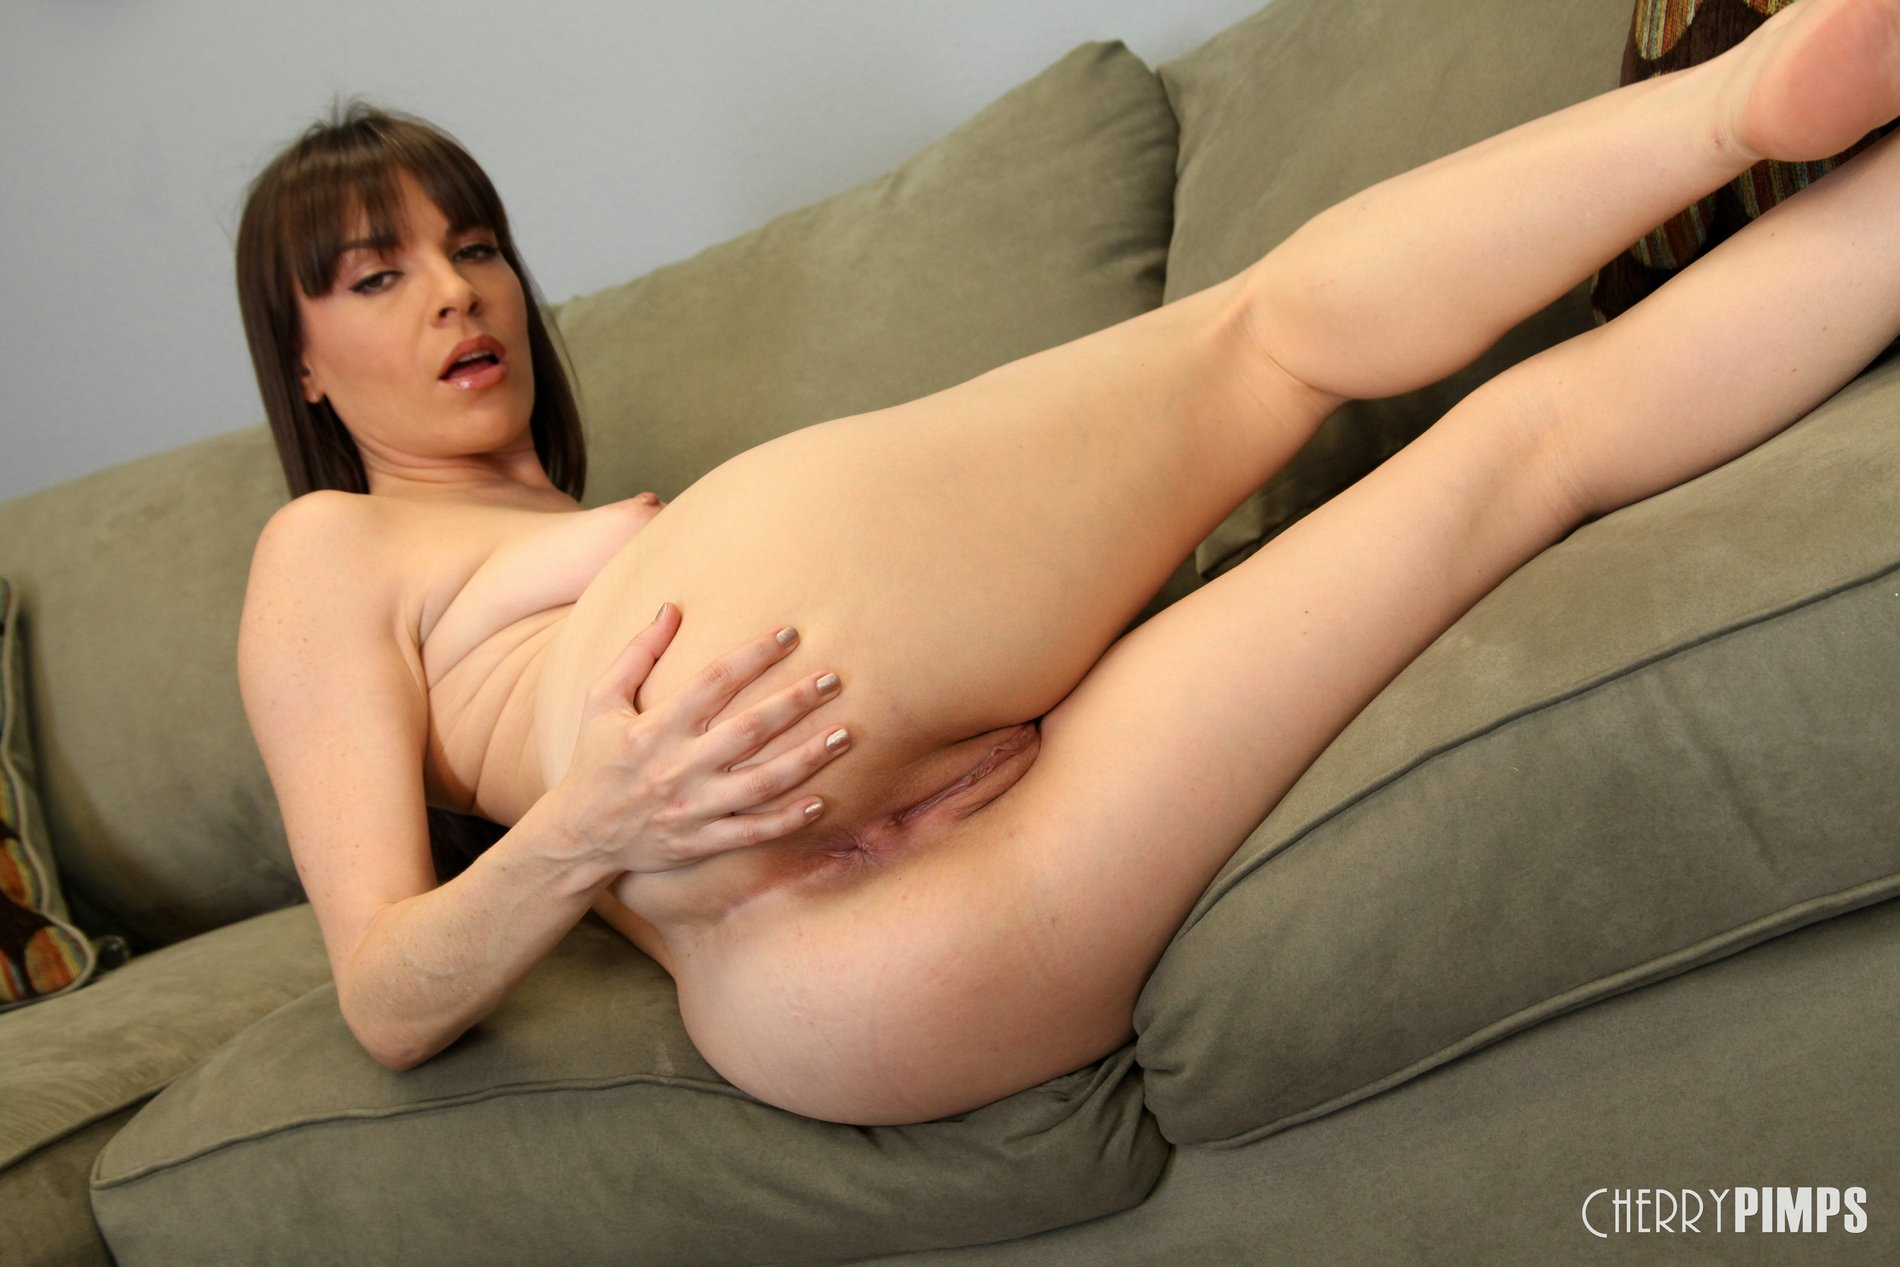 Dildoing her pussy and then her assnaughty euro slut 10